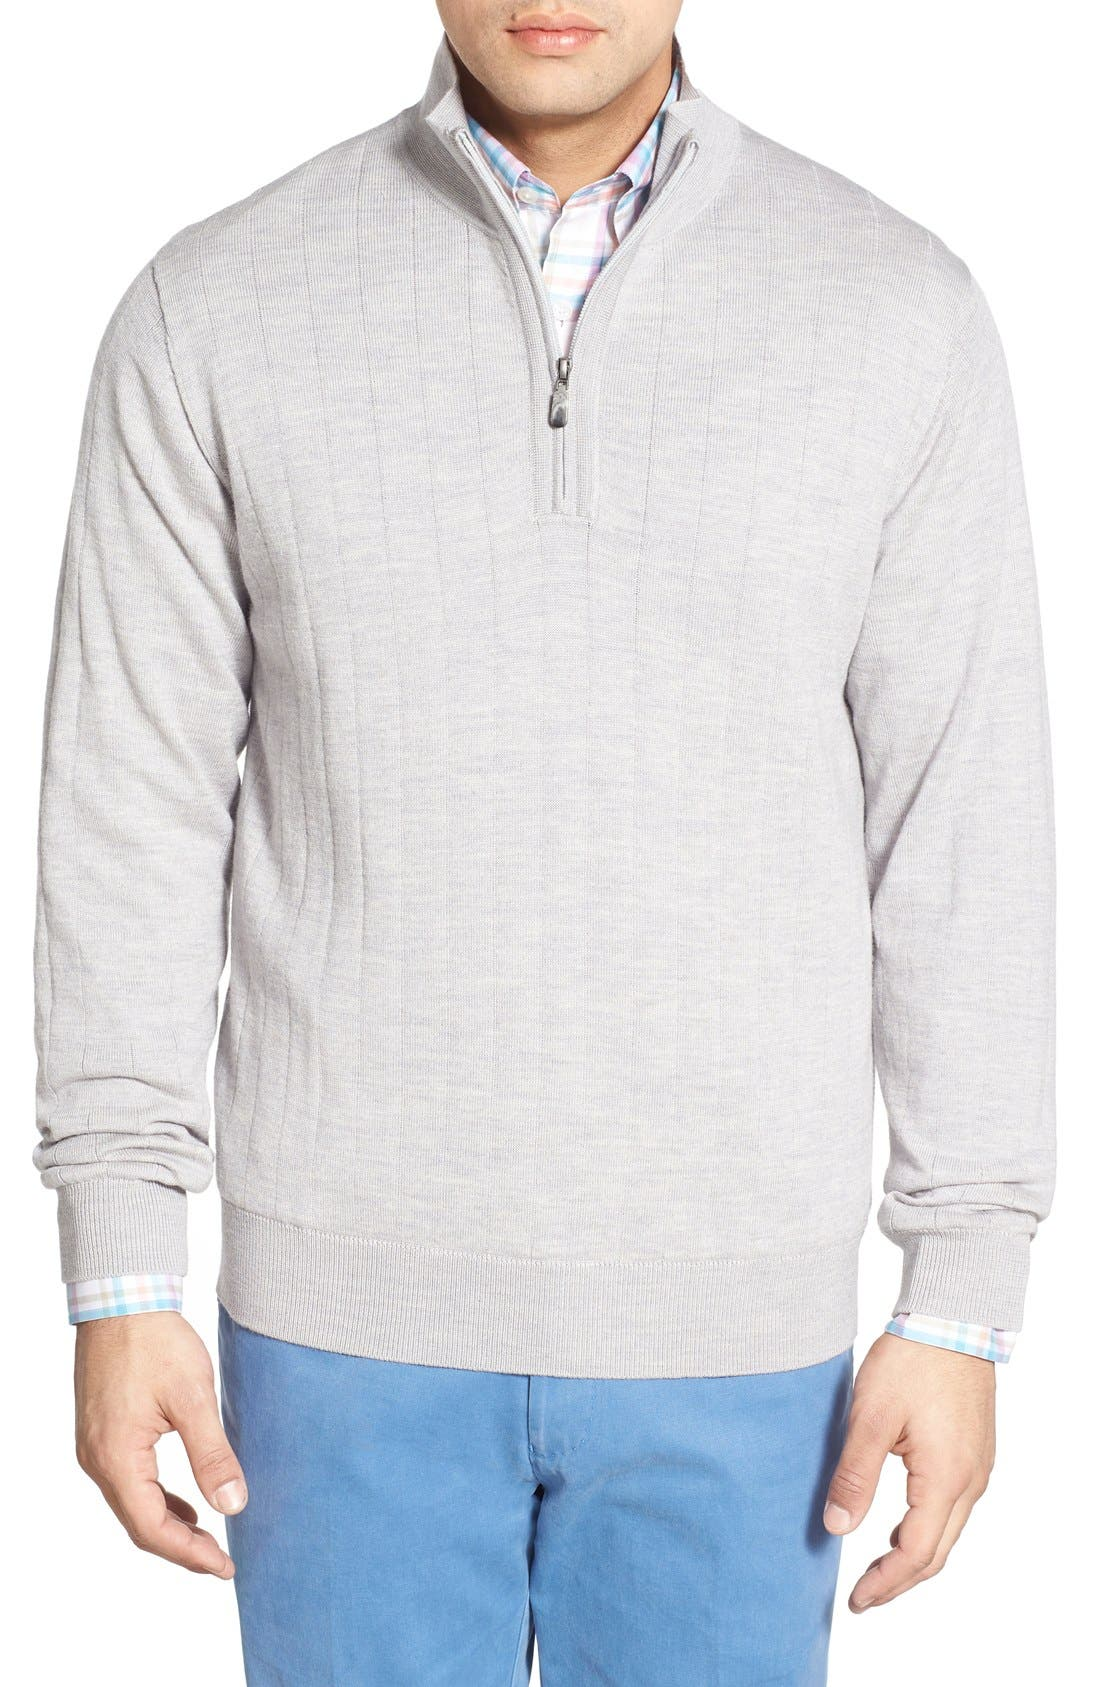 Windproof Merino Wool Quarter Zip Sweater,                         Main,                         color, HEATHER GREY